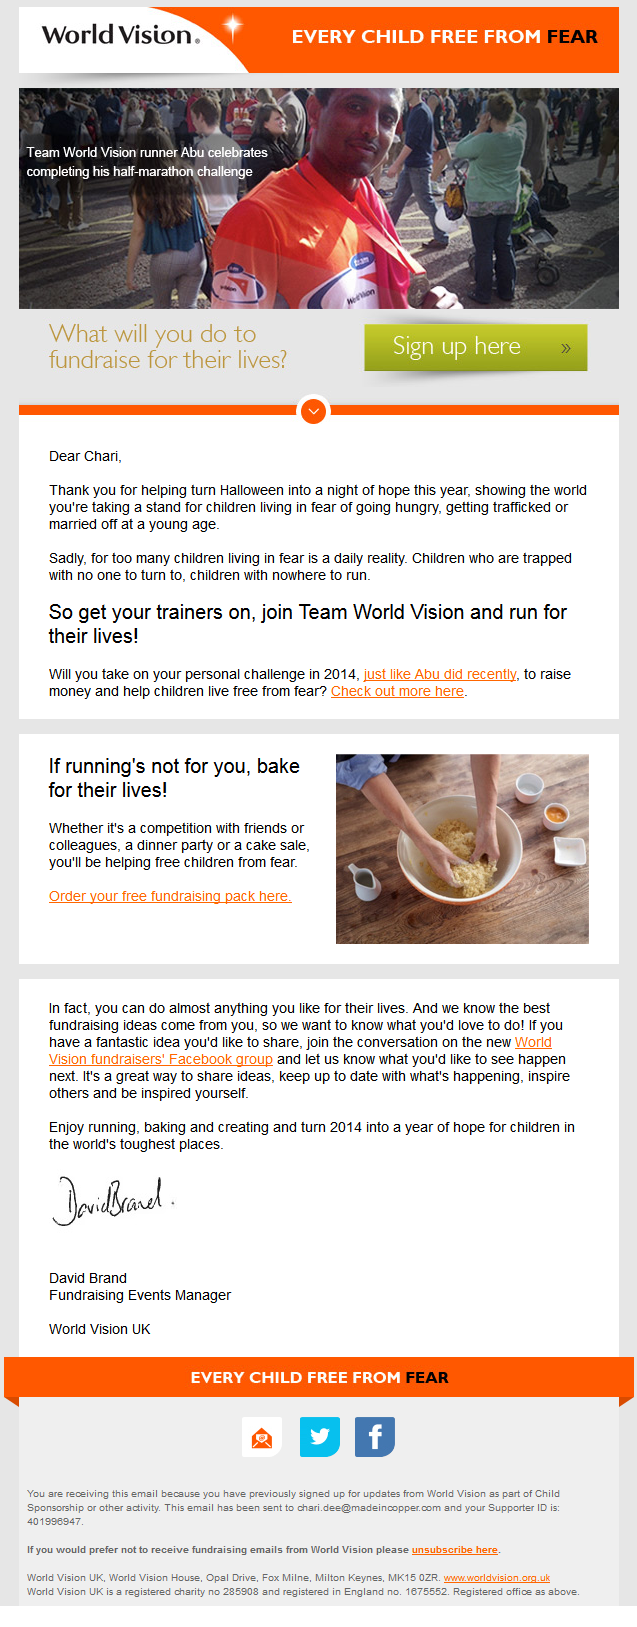 Charity Emails - World Vision - Will you fundraise for their lives?